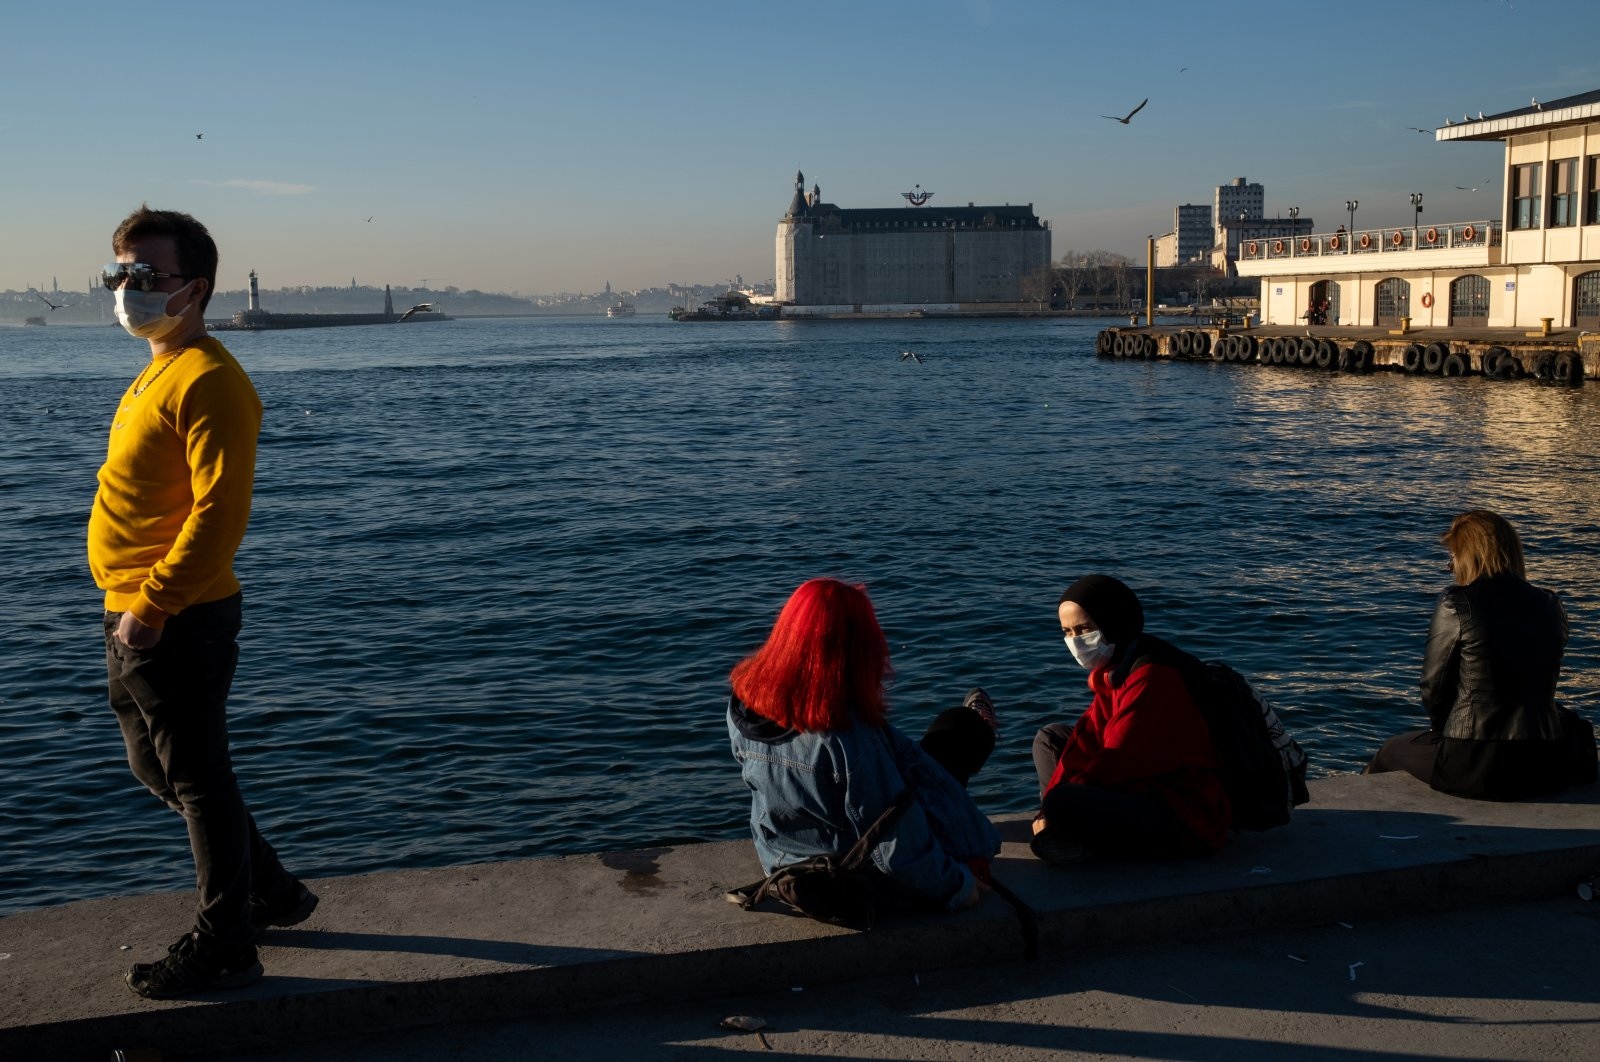 People spend time at a seaside amid the COVID-19 pandemic, Kadıköy district, Istanbul, Turkey, Feb. 5, 2021. (Photo by Getty Images)